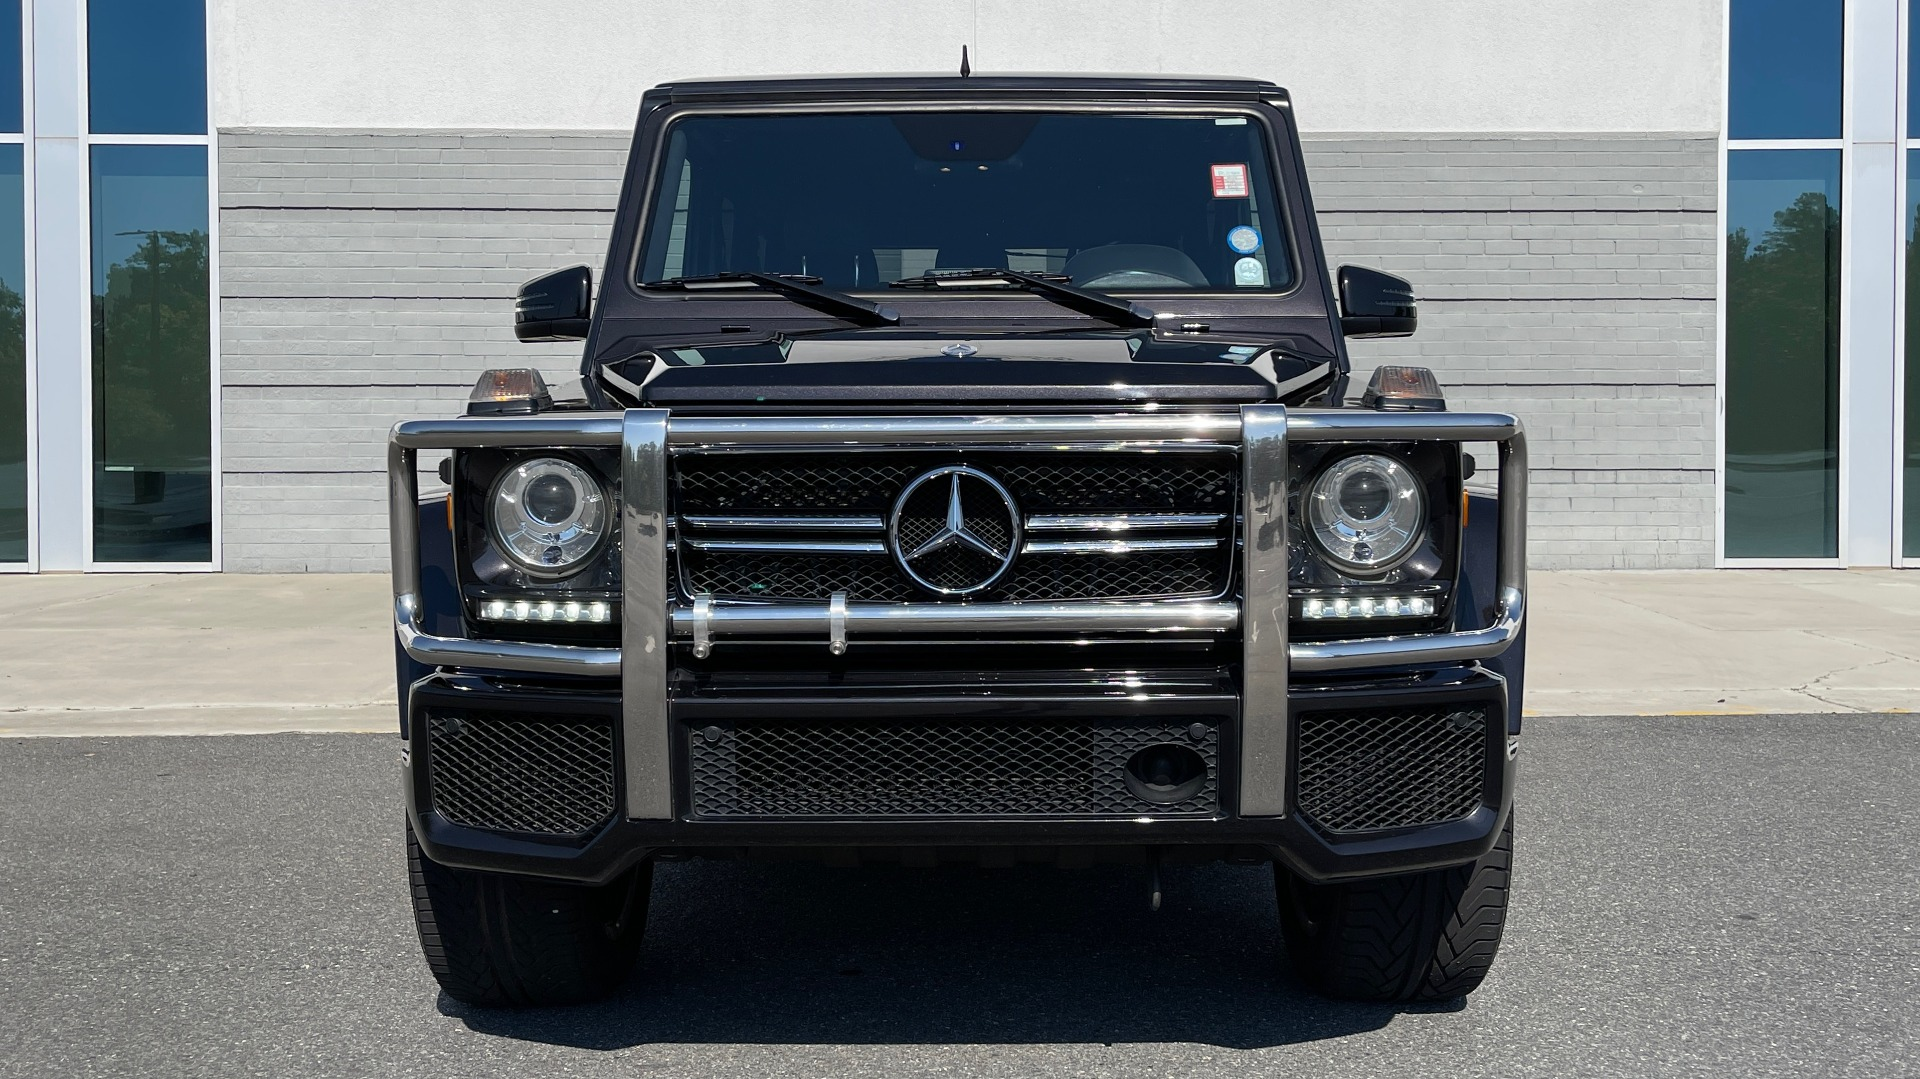 Used 2014 Mercedes-Benz G-CLASS G 63 AMG / DISGNO LEATHER / NAV / SUNROOF / REARVIEW for sale $88,999 at Formula Imports in Charlotte NC 28227 12